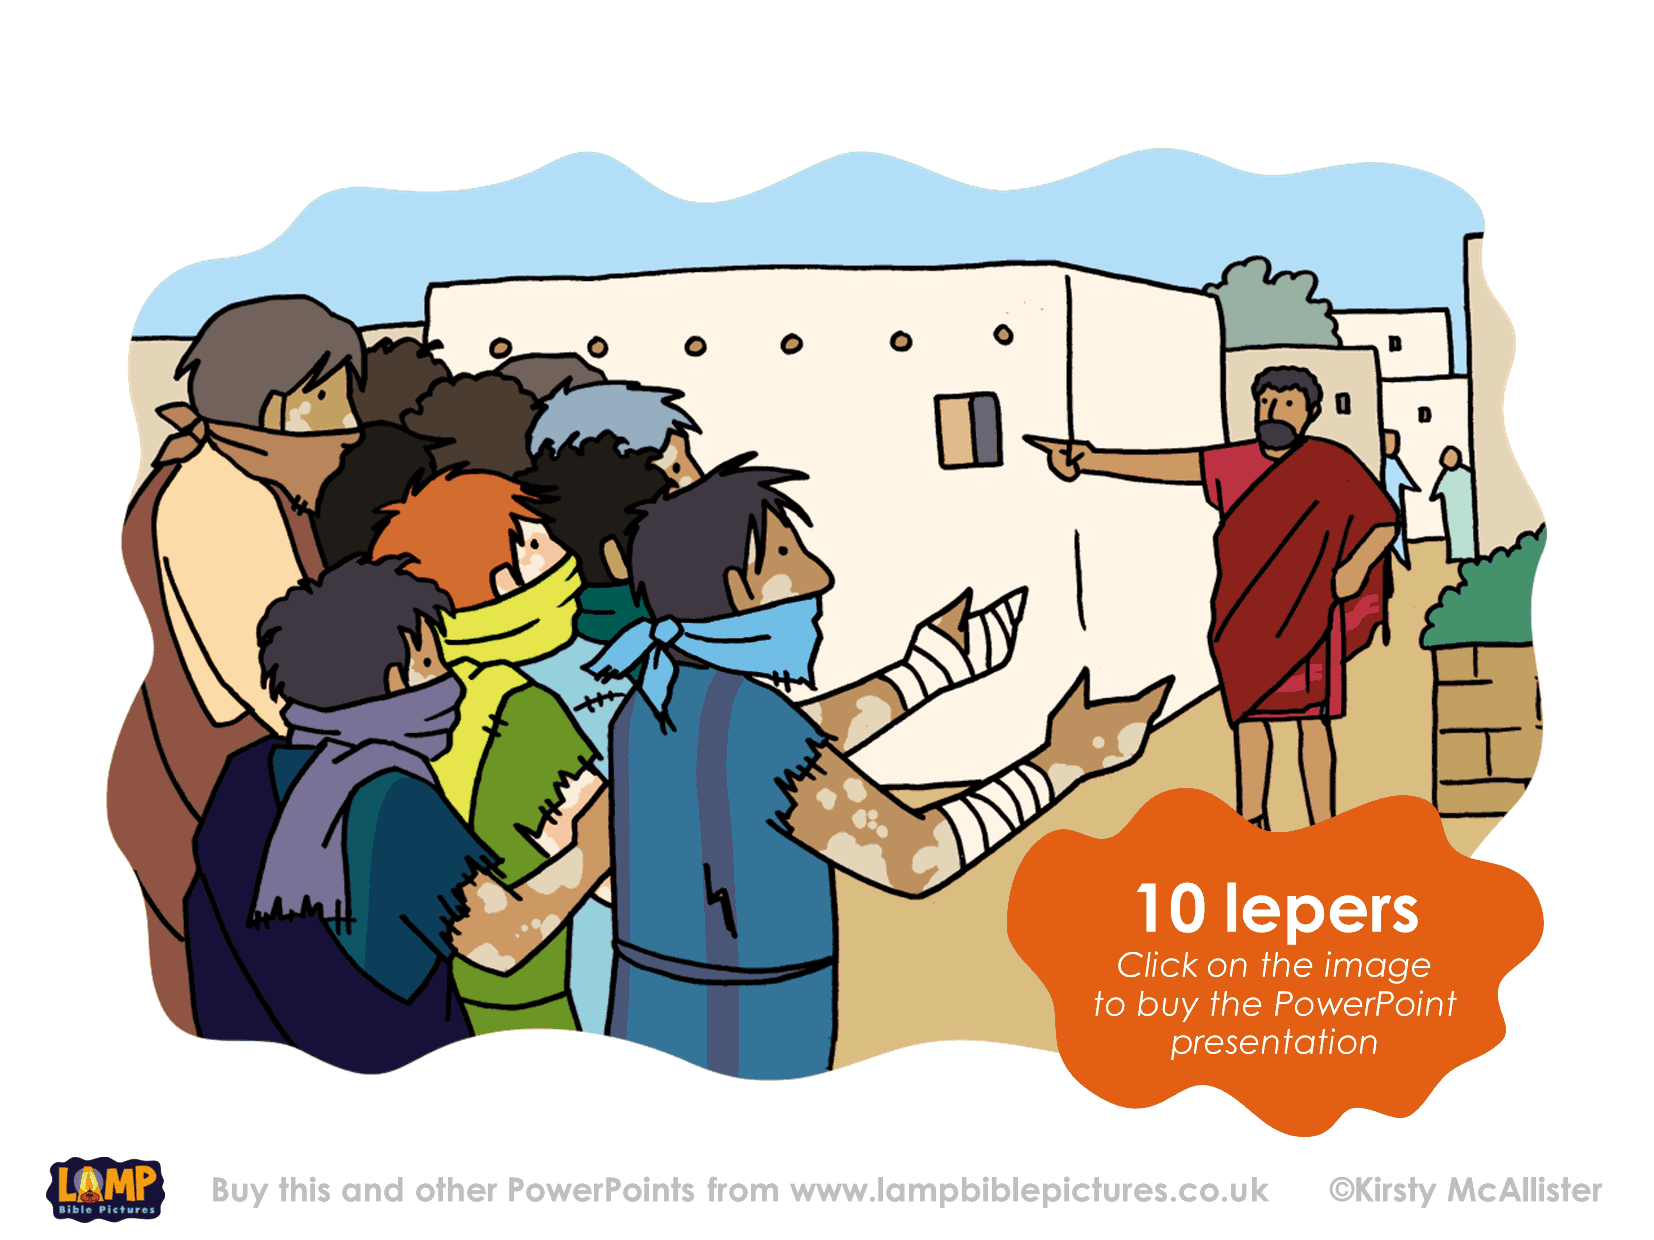 10 lepers lamp bible pictures